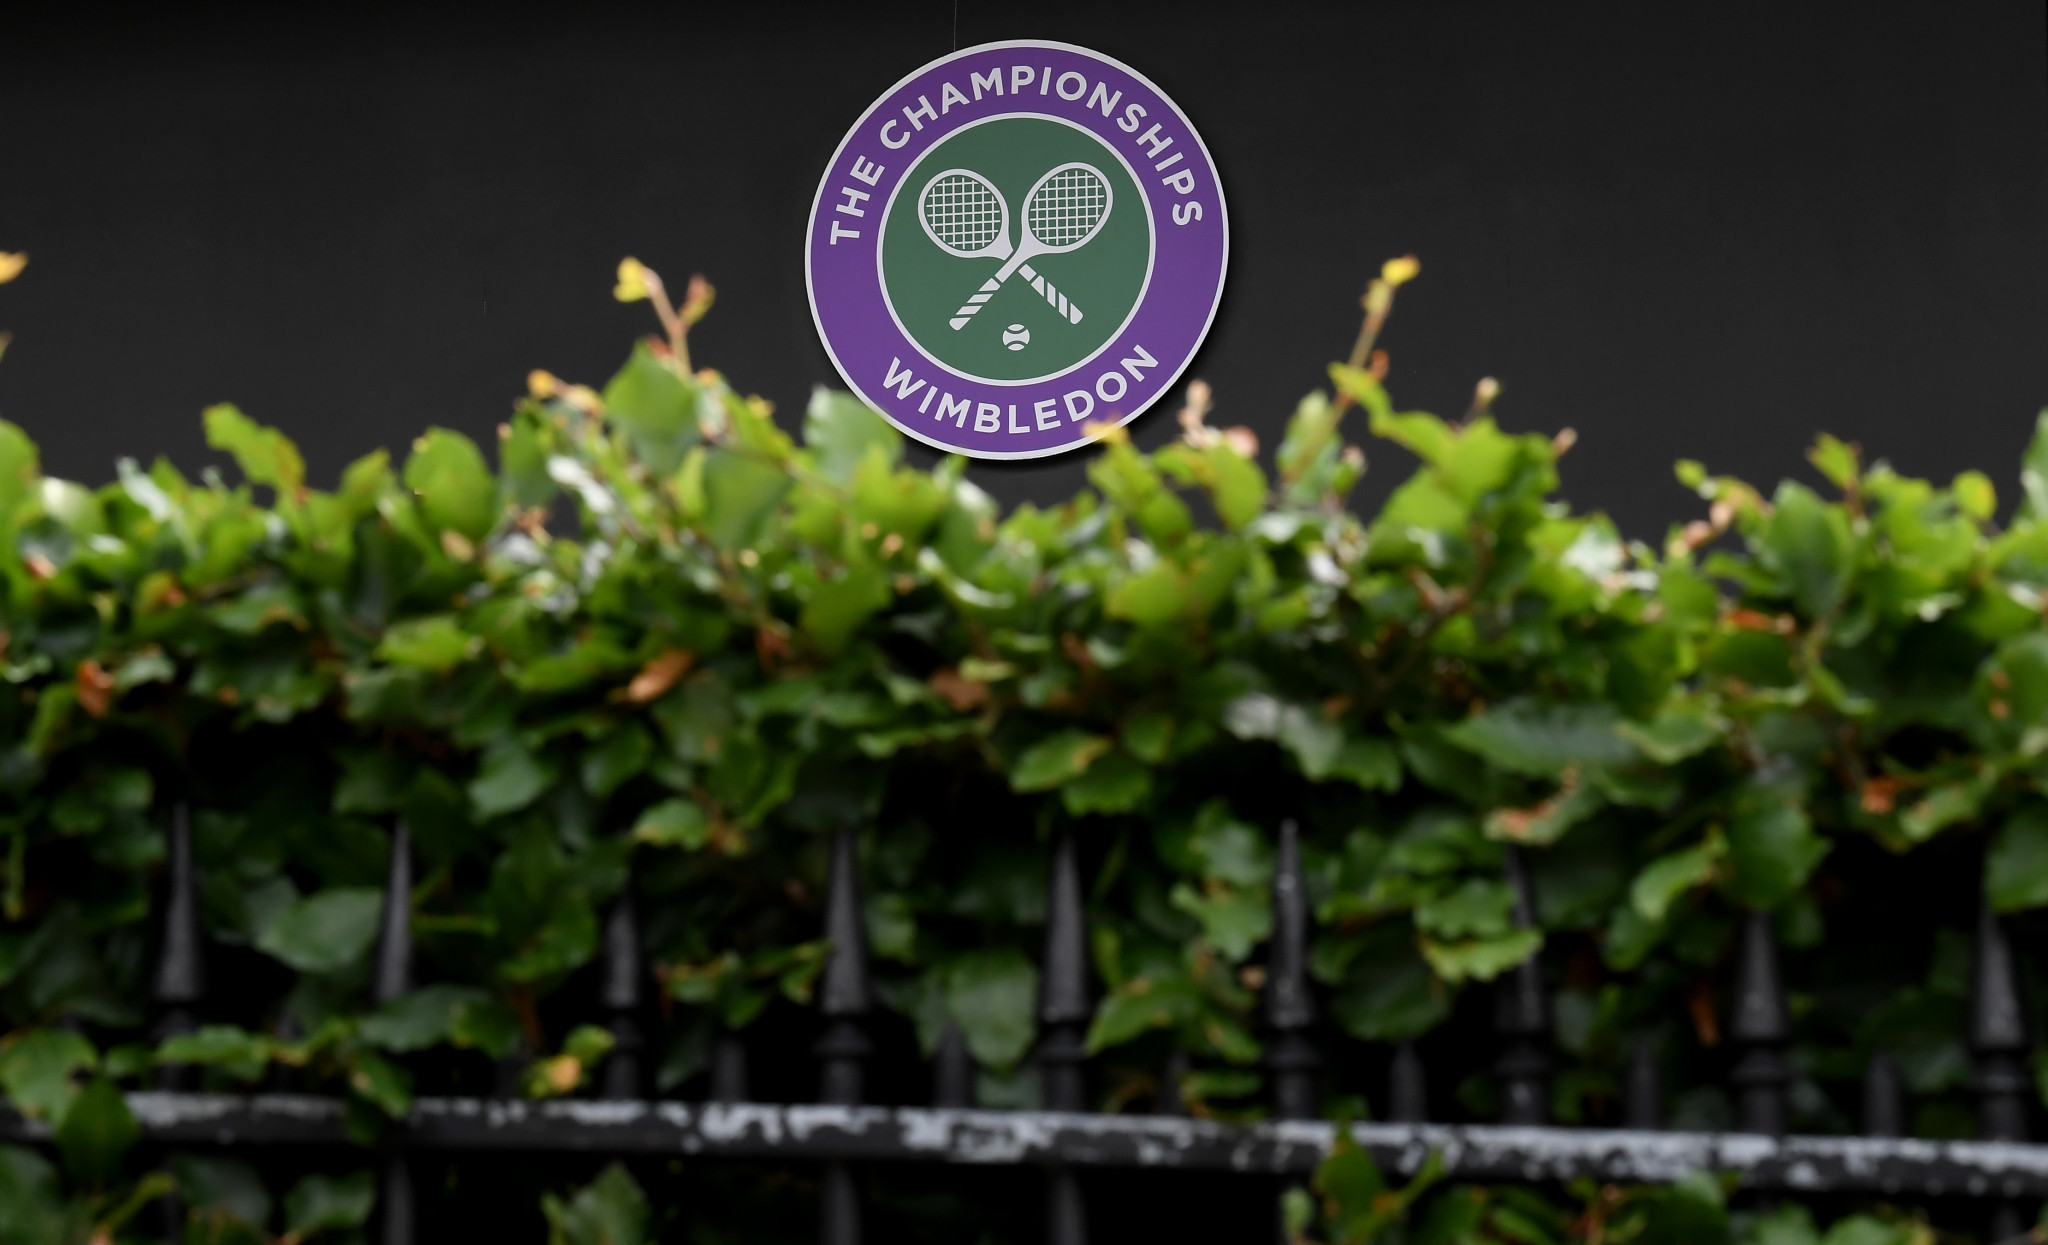 Wimbledon set to return in 2021 even without fans